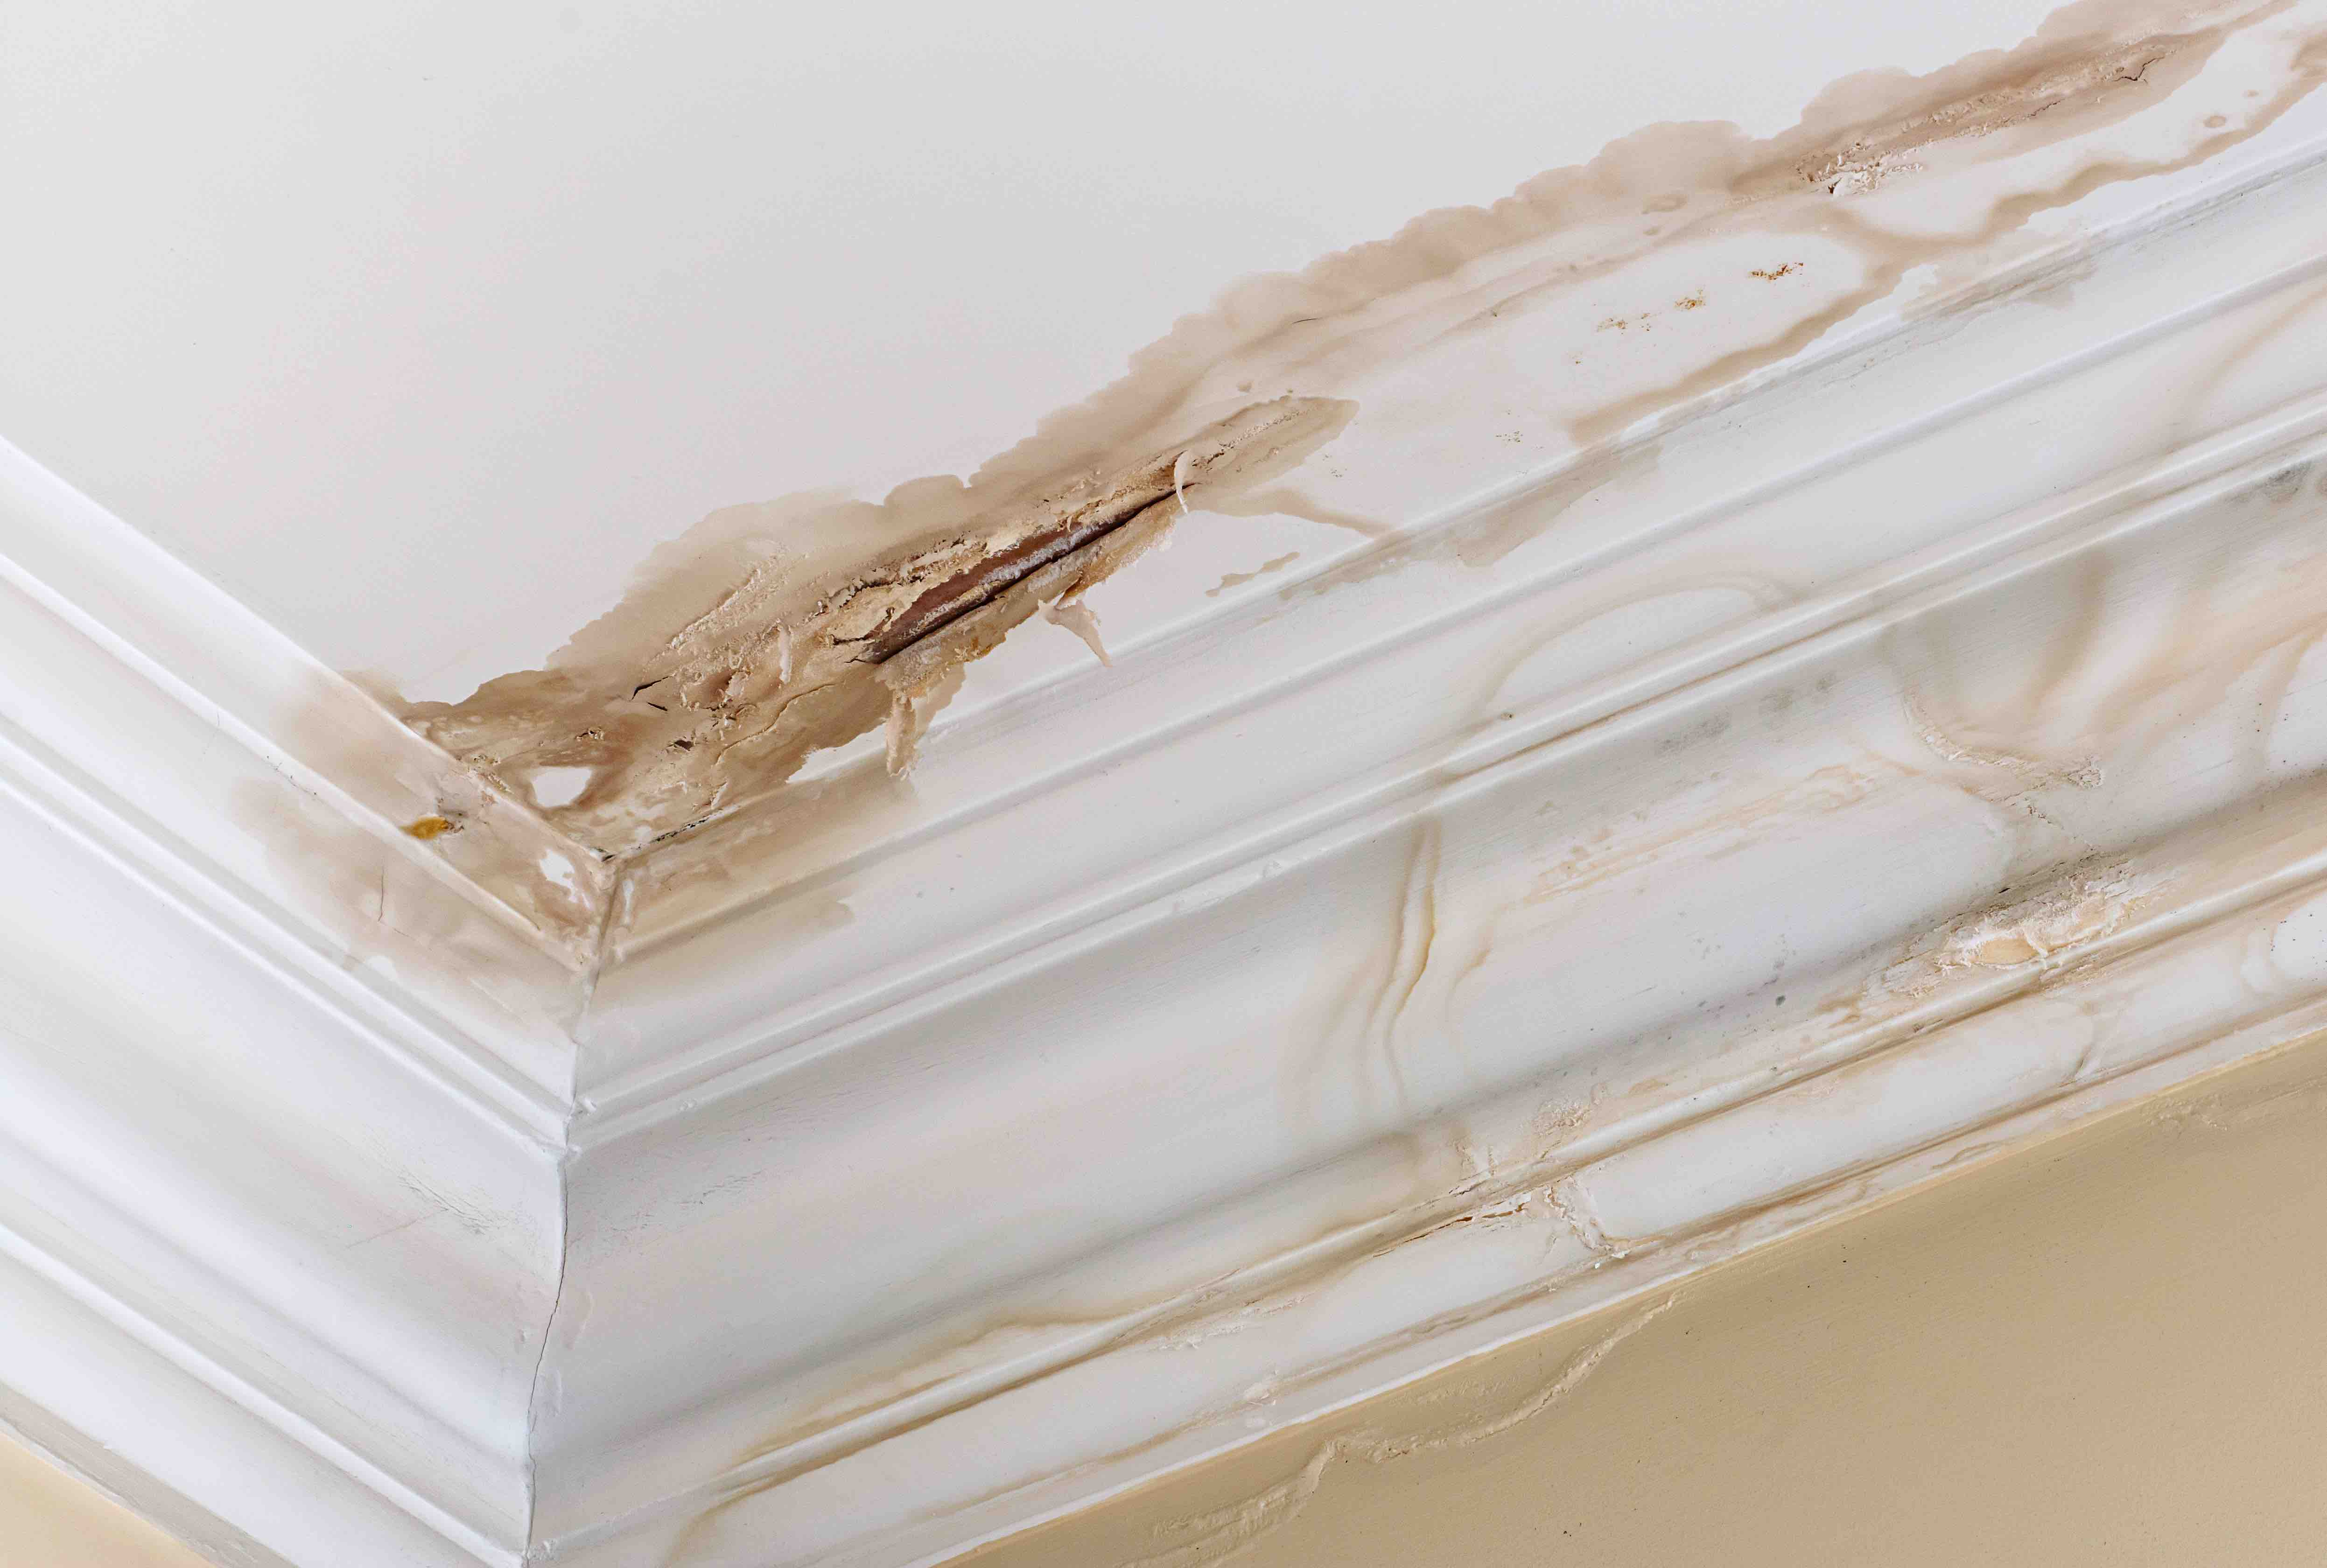 Water damage can create unsightly messes in a structure, and can even endanger occupants.